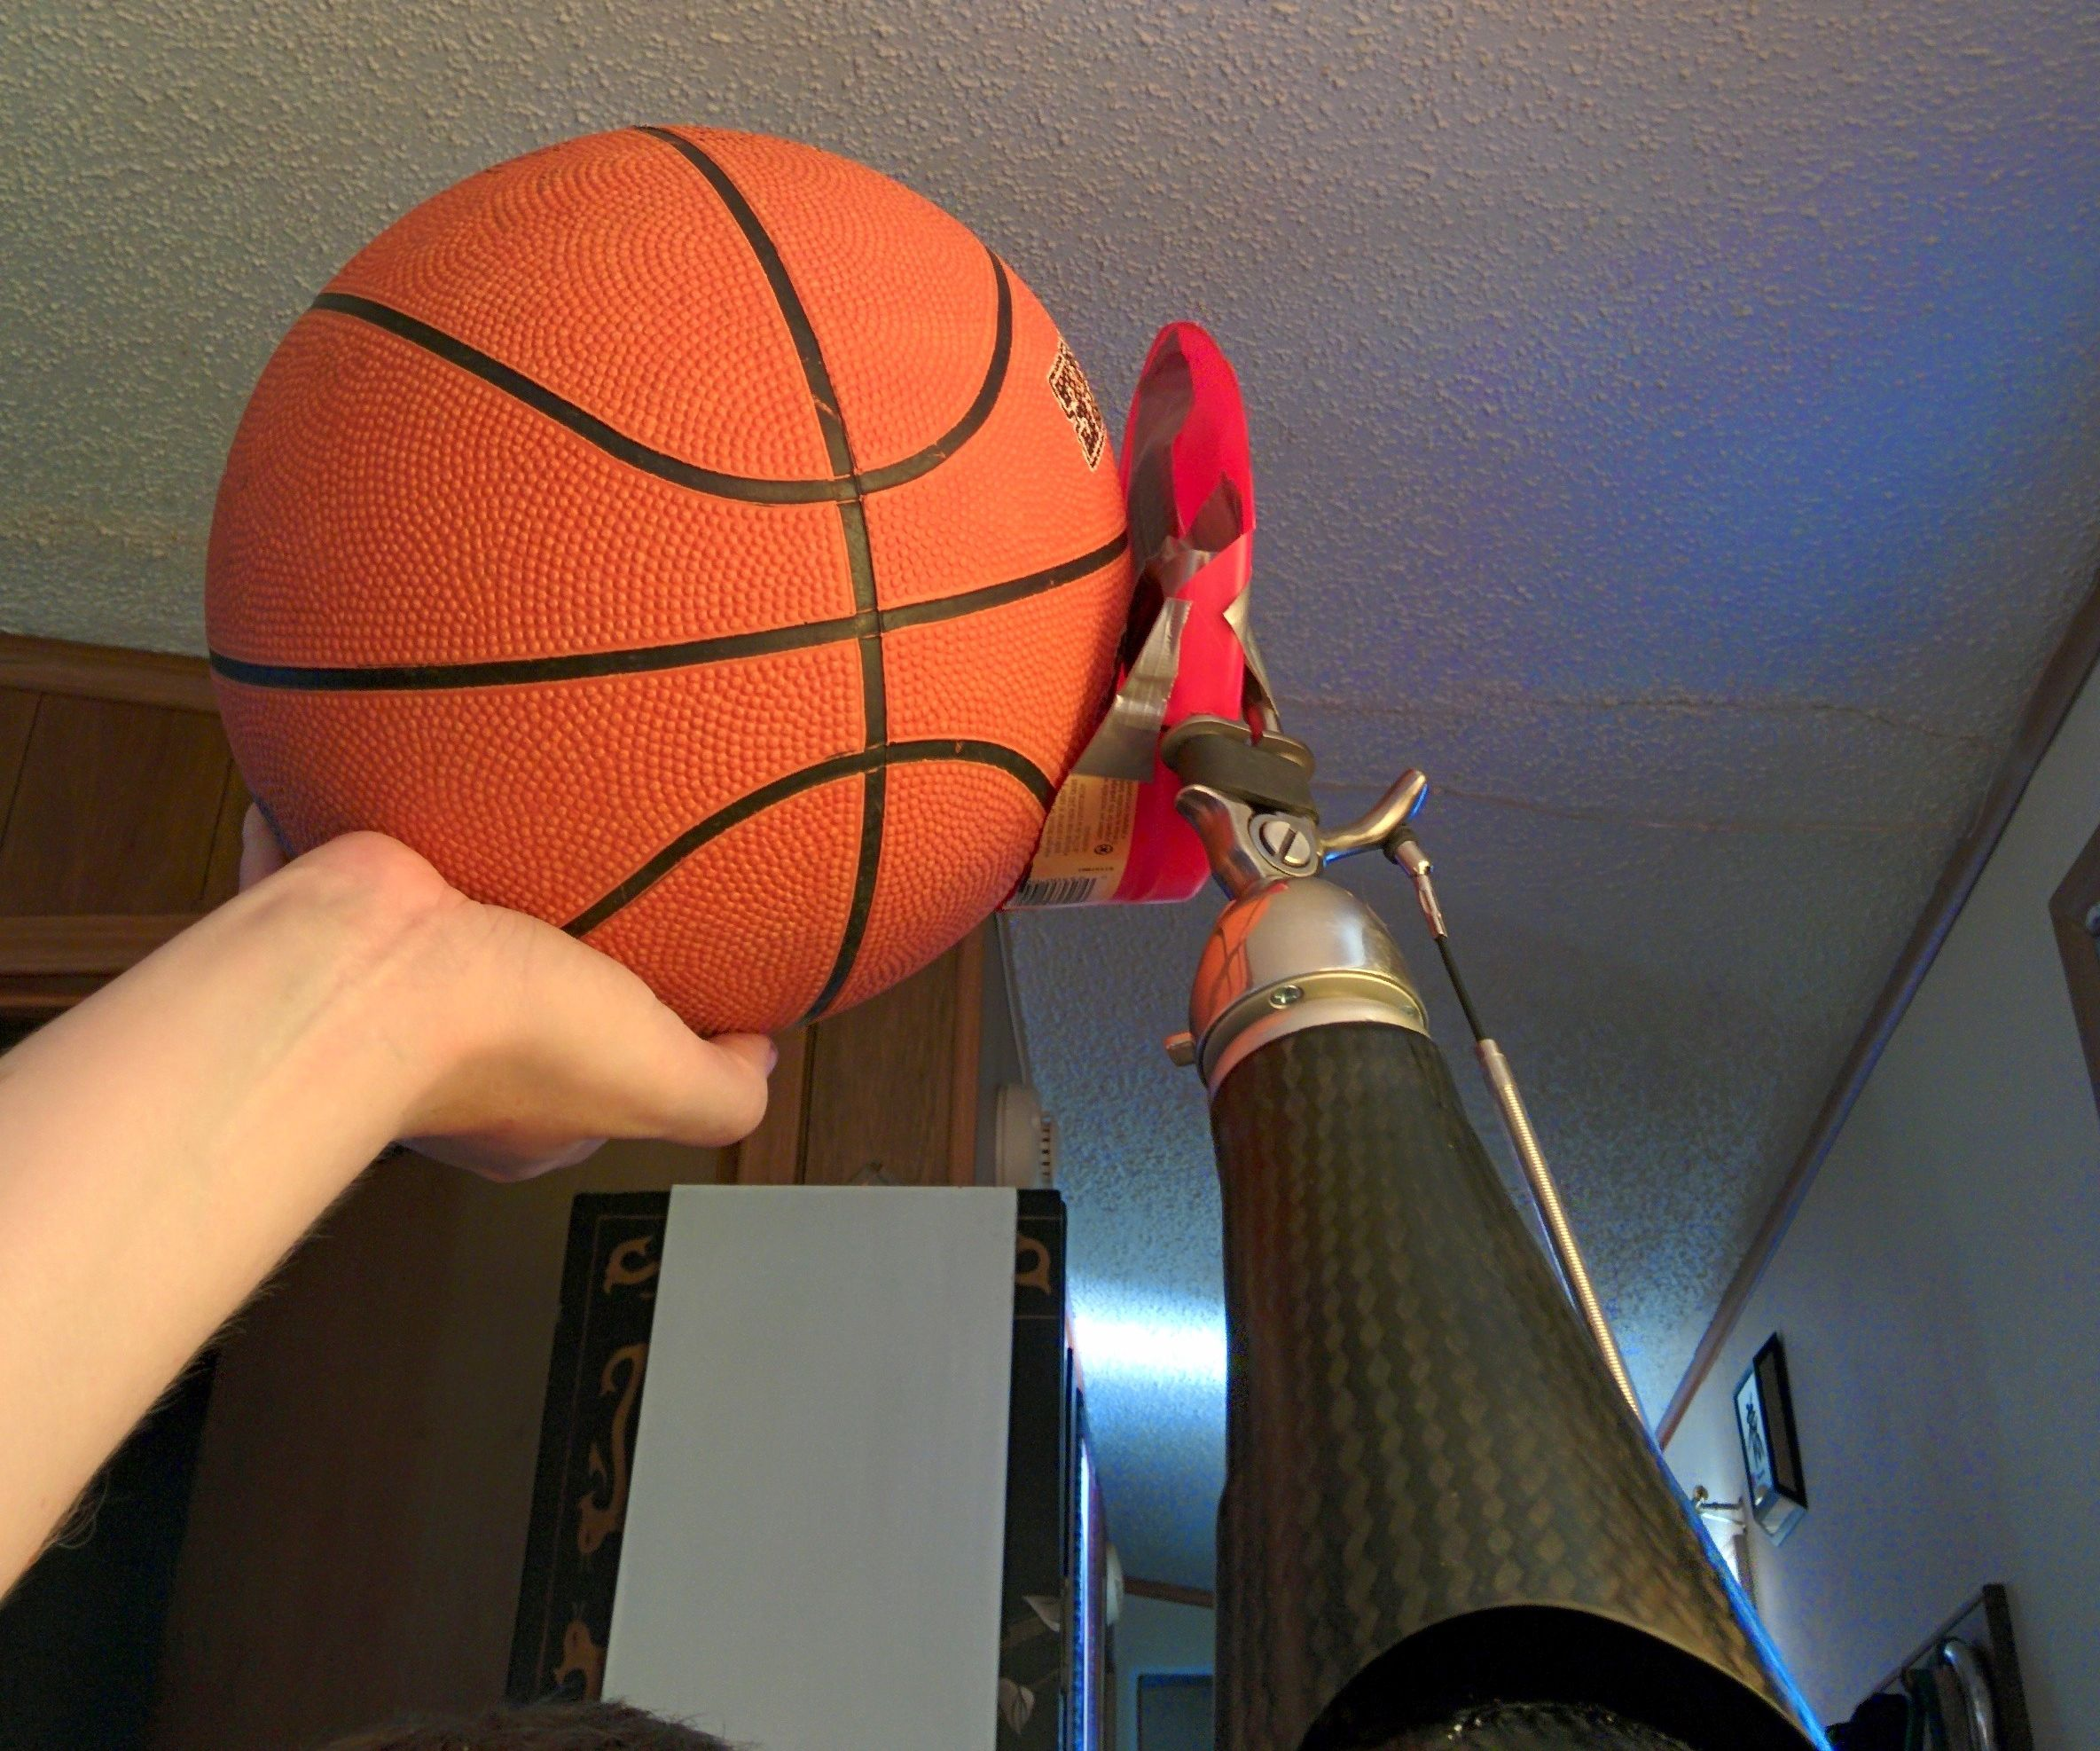 cheap prosthetic hand for playing basketball